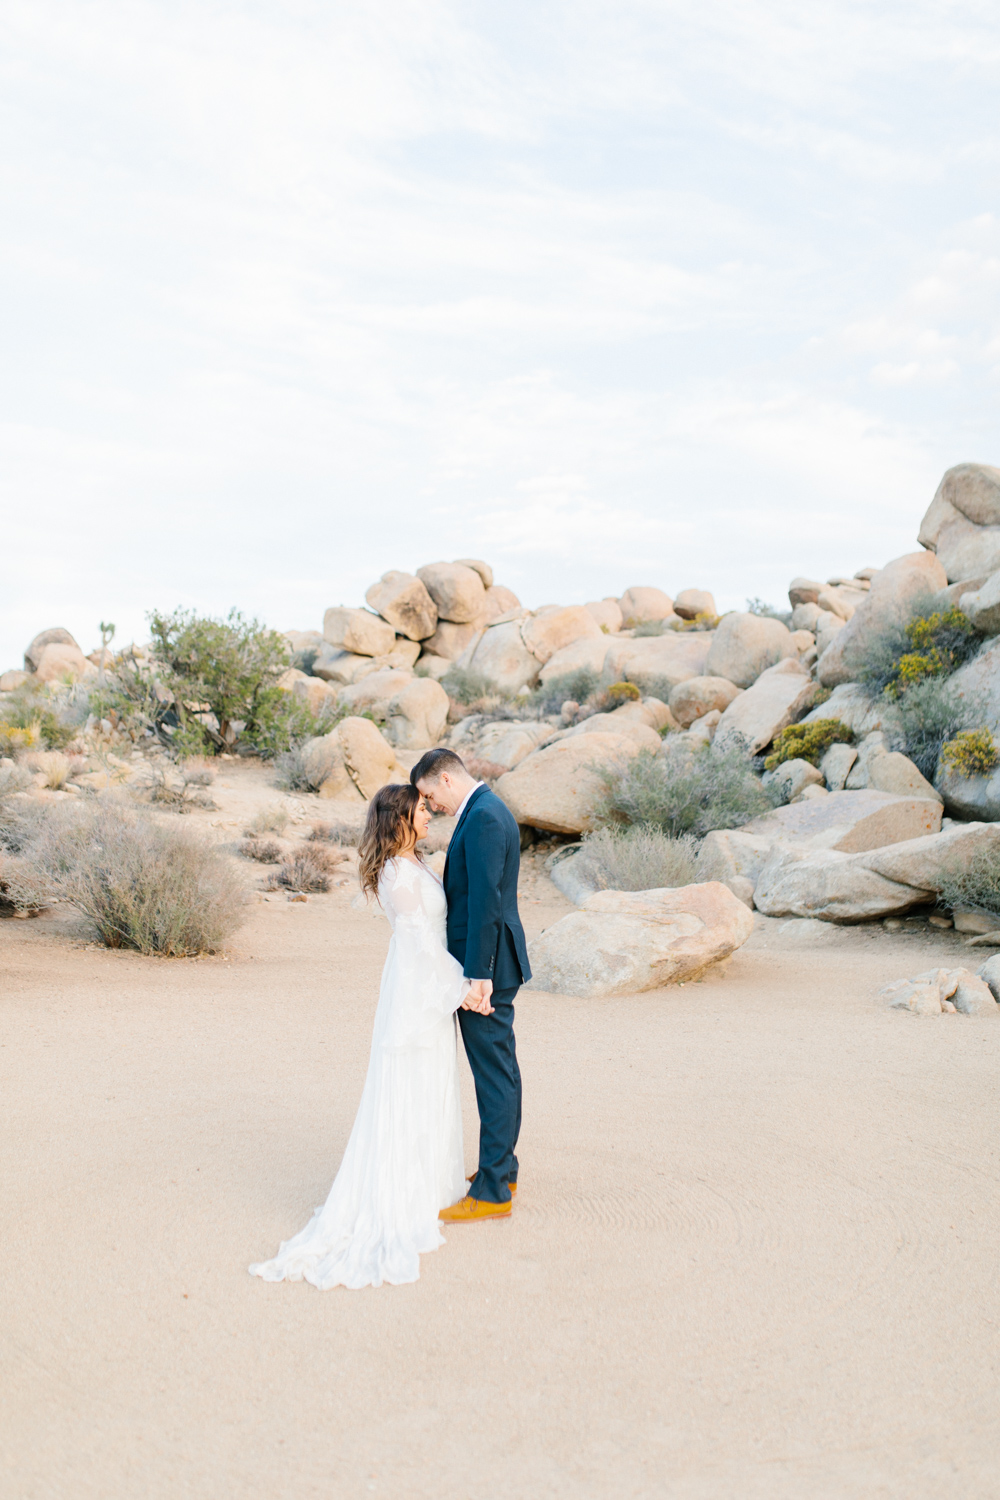 The Ruin Venue California | California Bride Inspiration | Fall Styled Shoot in the Desert | Epic Styled Shoot | Southern California Wedding Photographer | The Dress Theory | Fall Desert Wedding